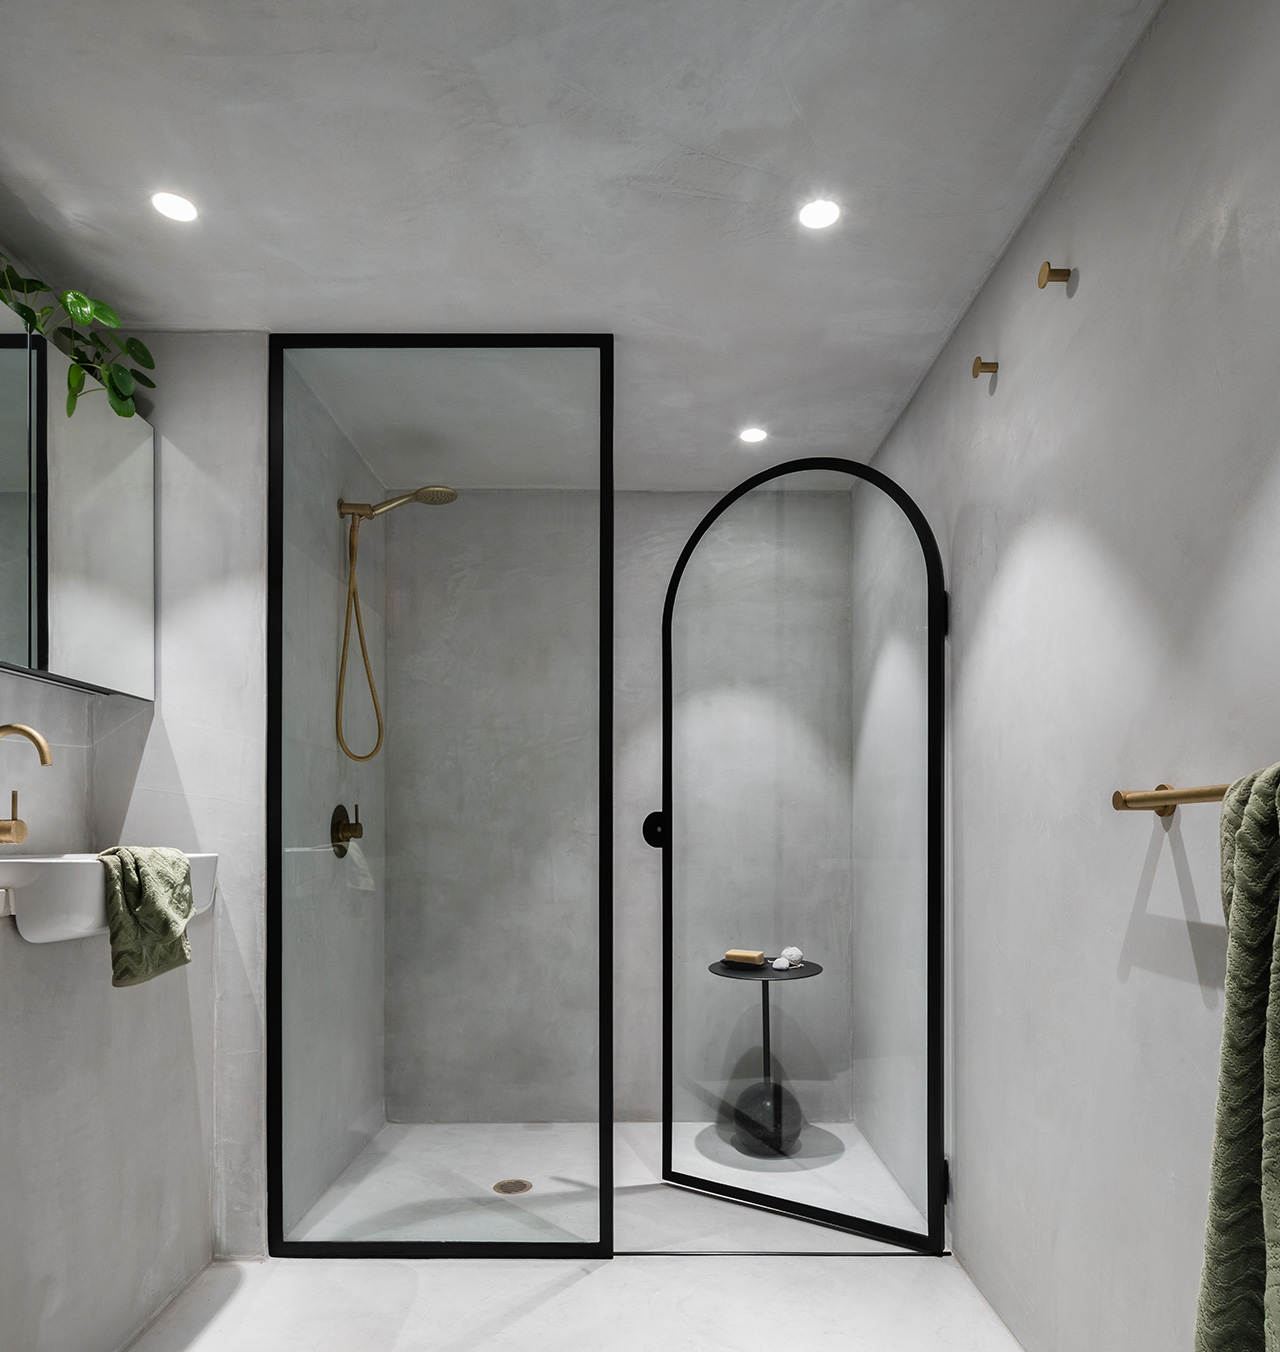 Use of curves in the glass shower entry.